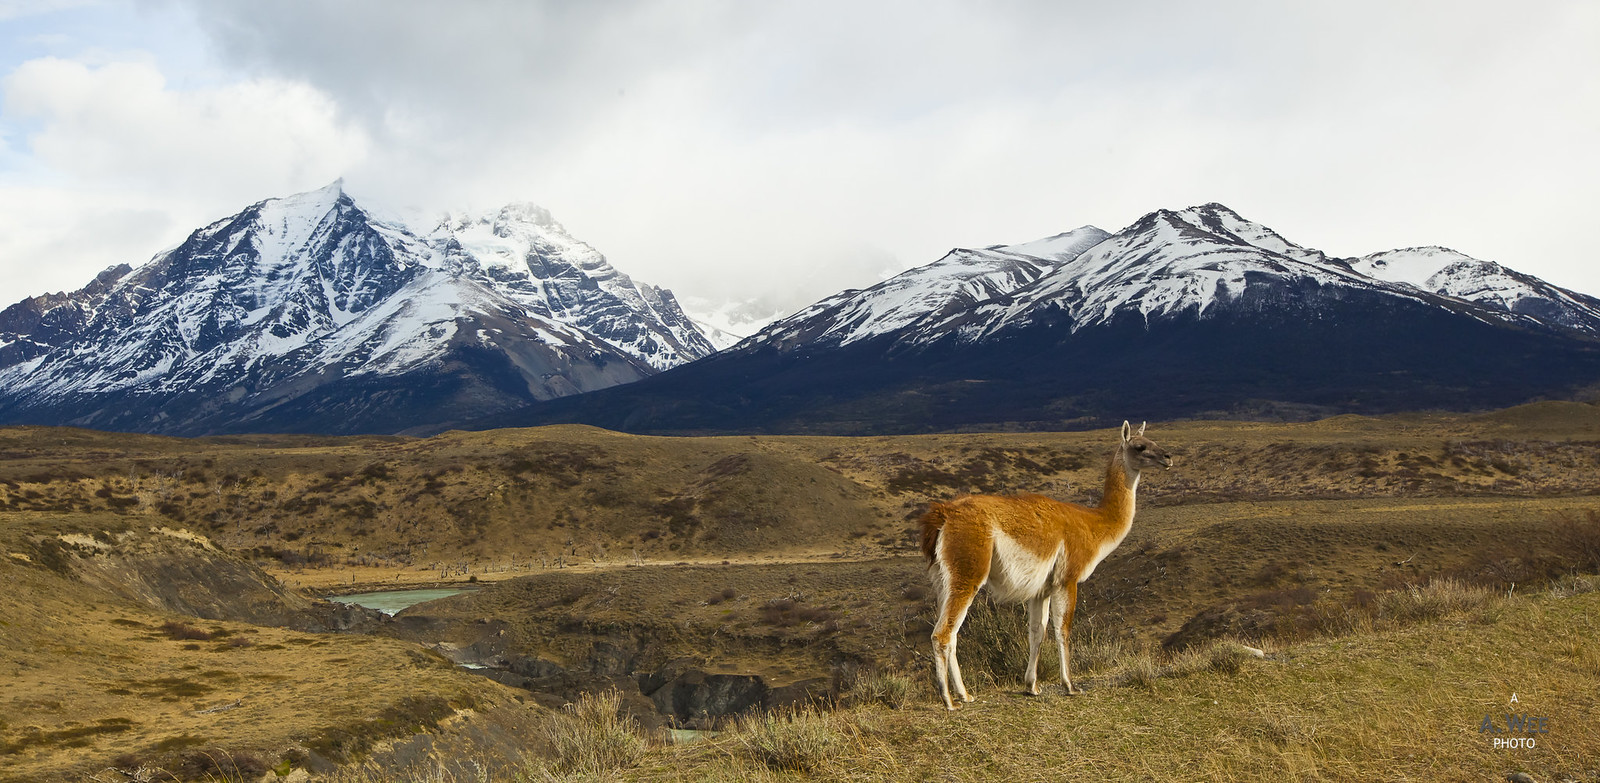 Guanaco at the park